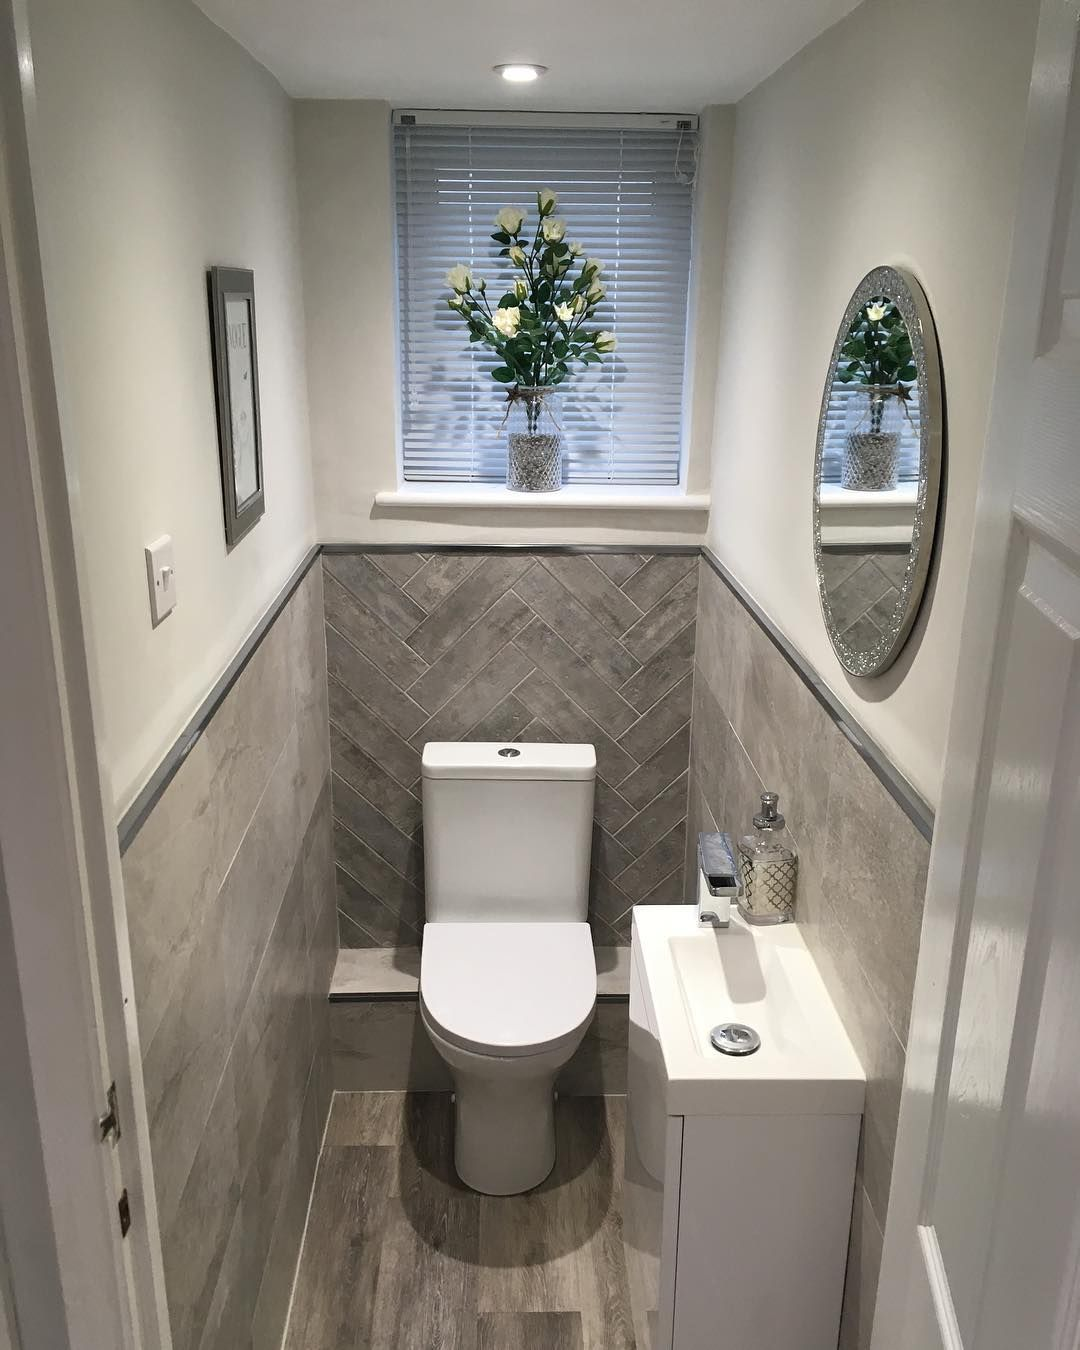 The House Is So Clean Tidy Without The Kids But I Can T Wait To Go And Pick Them Up In A Little W Toilet Room Decor Small Toilet Room Small